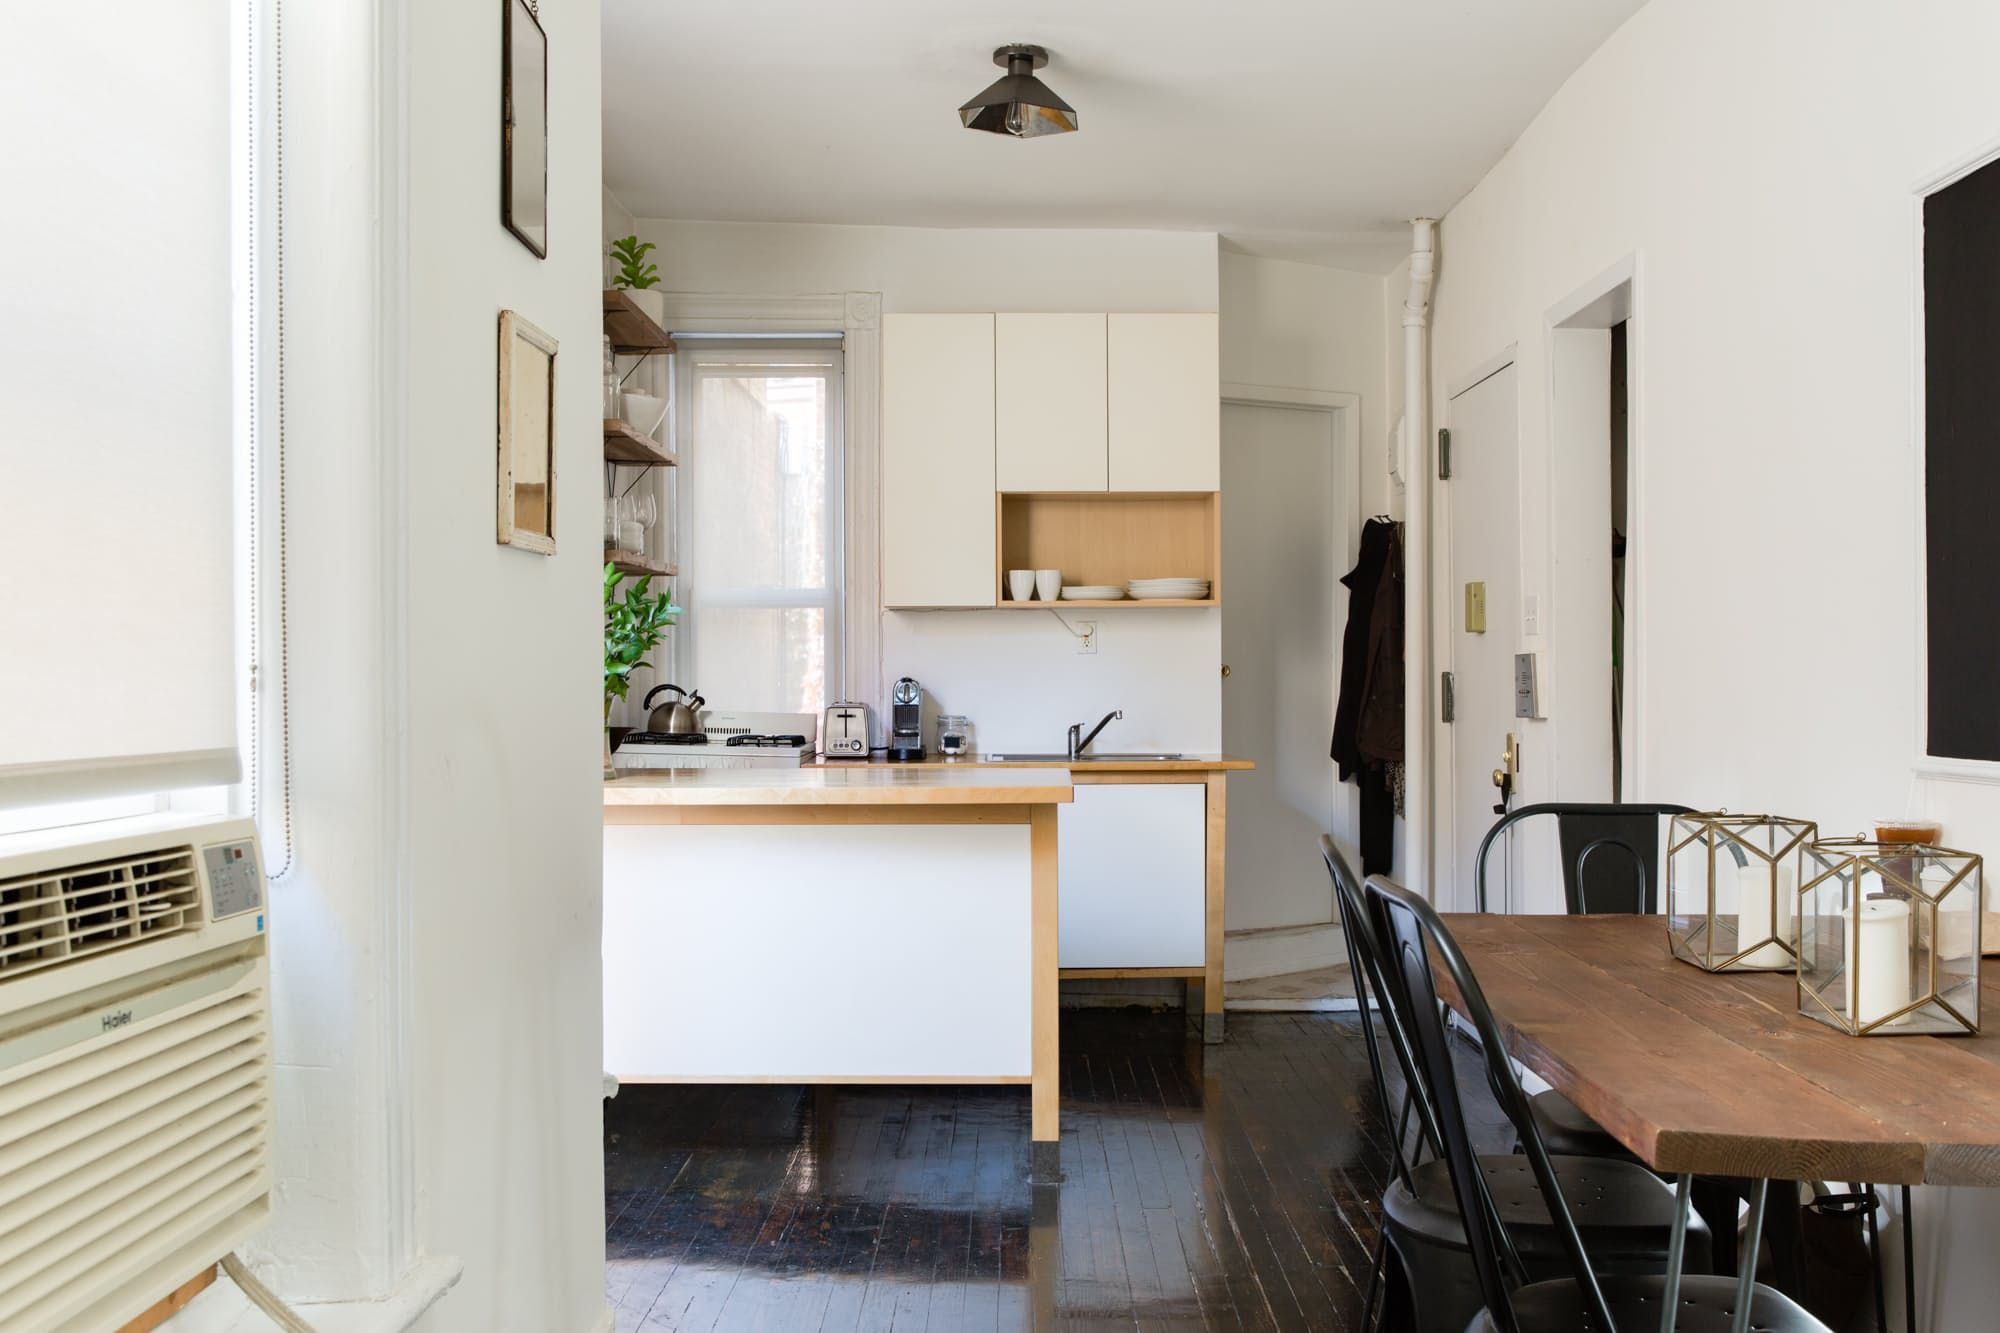 Dorable the kitchen table nyc crest best kitchen ideas i contain tour a compact chic nyc apartment full of smart solutions door workwithnaturefo